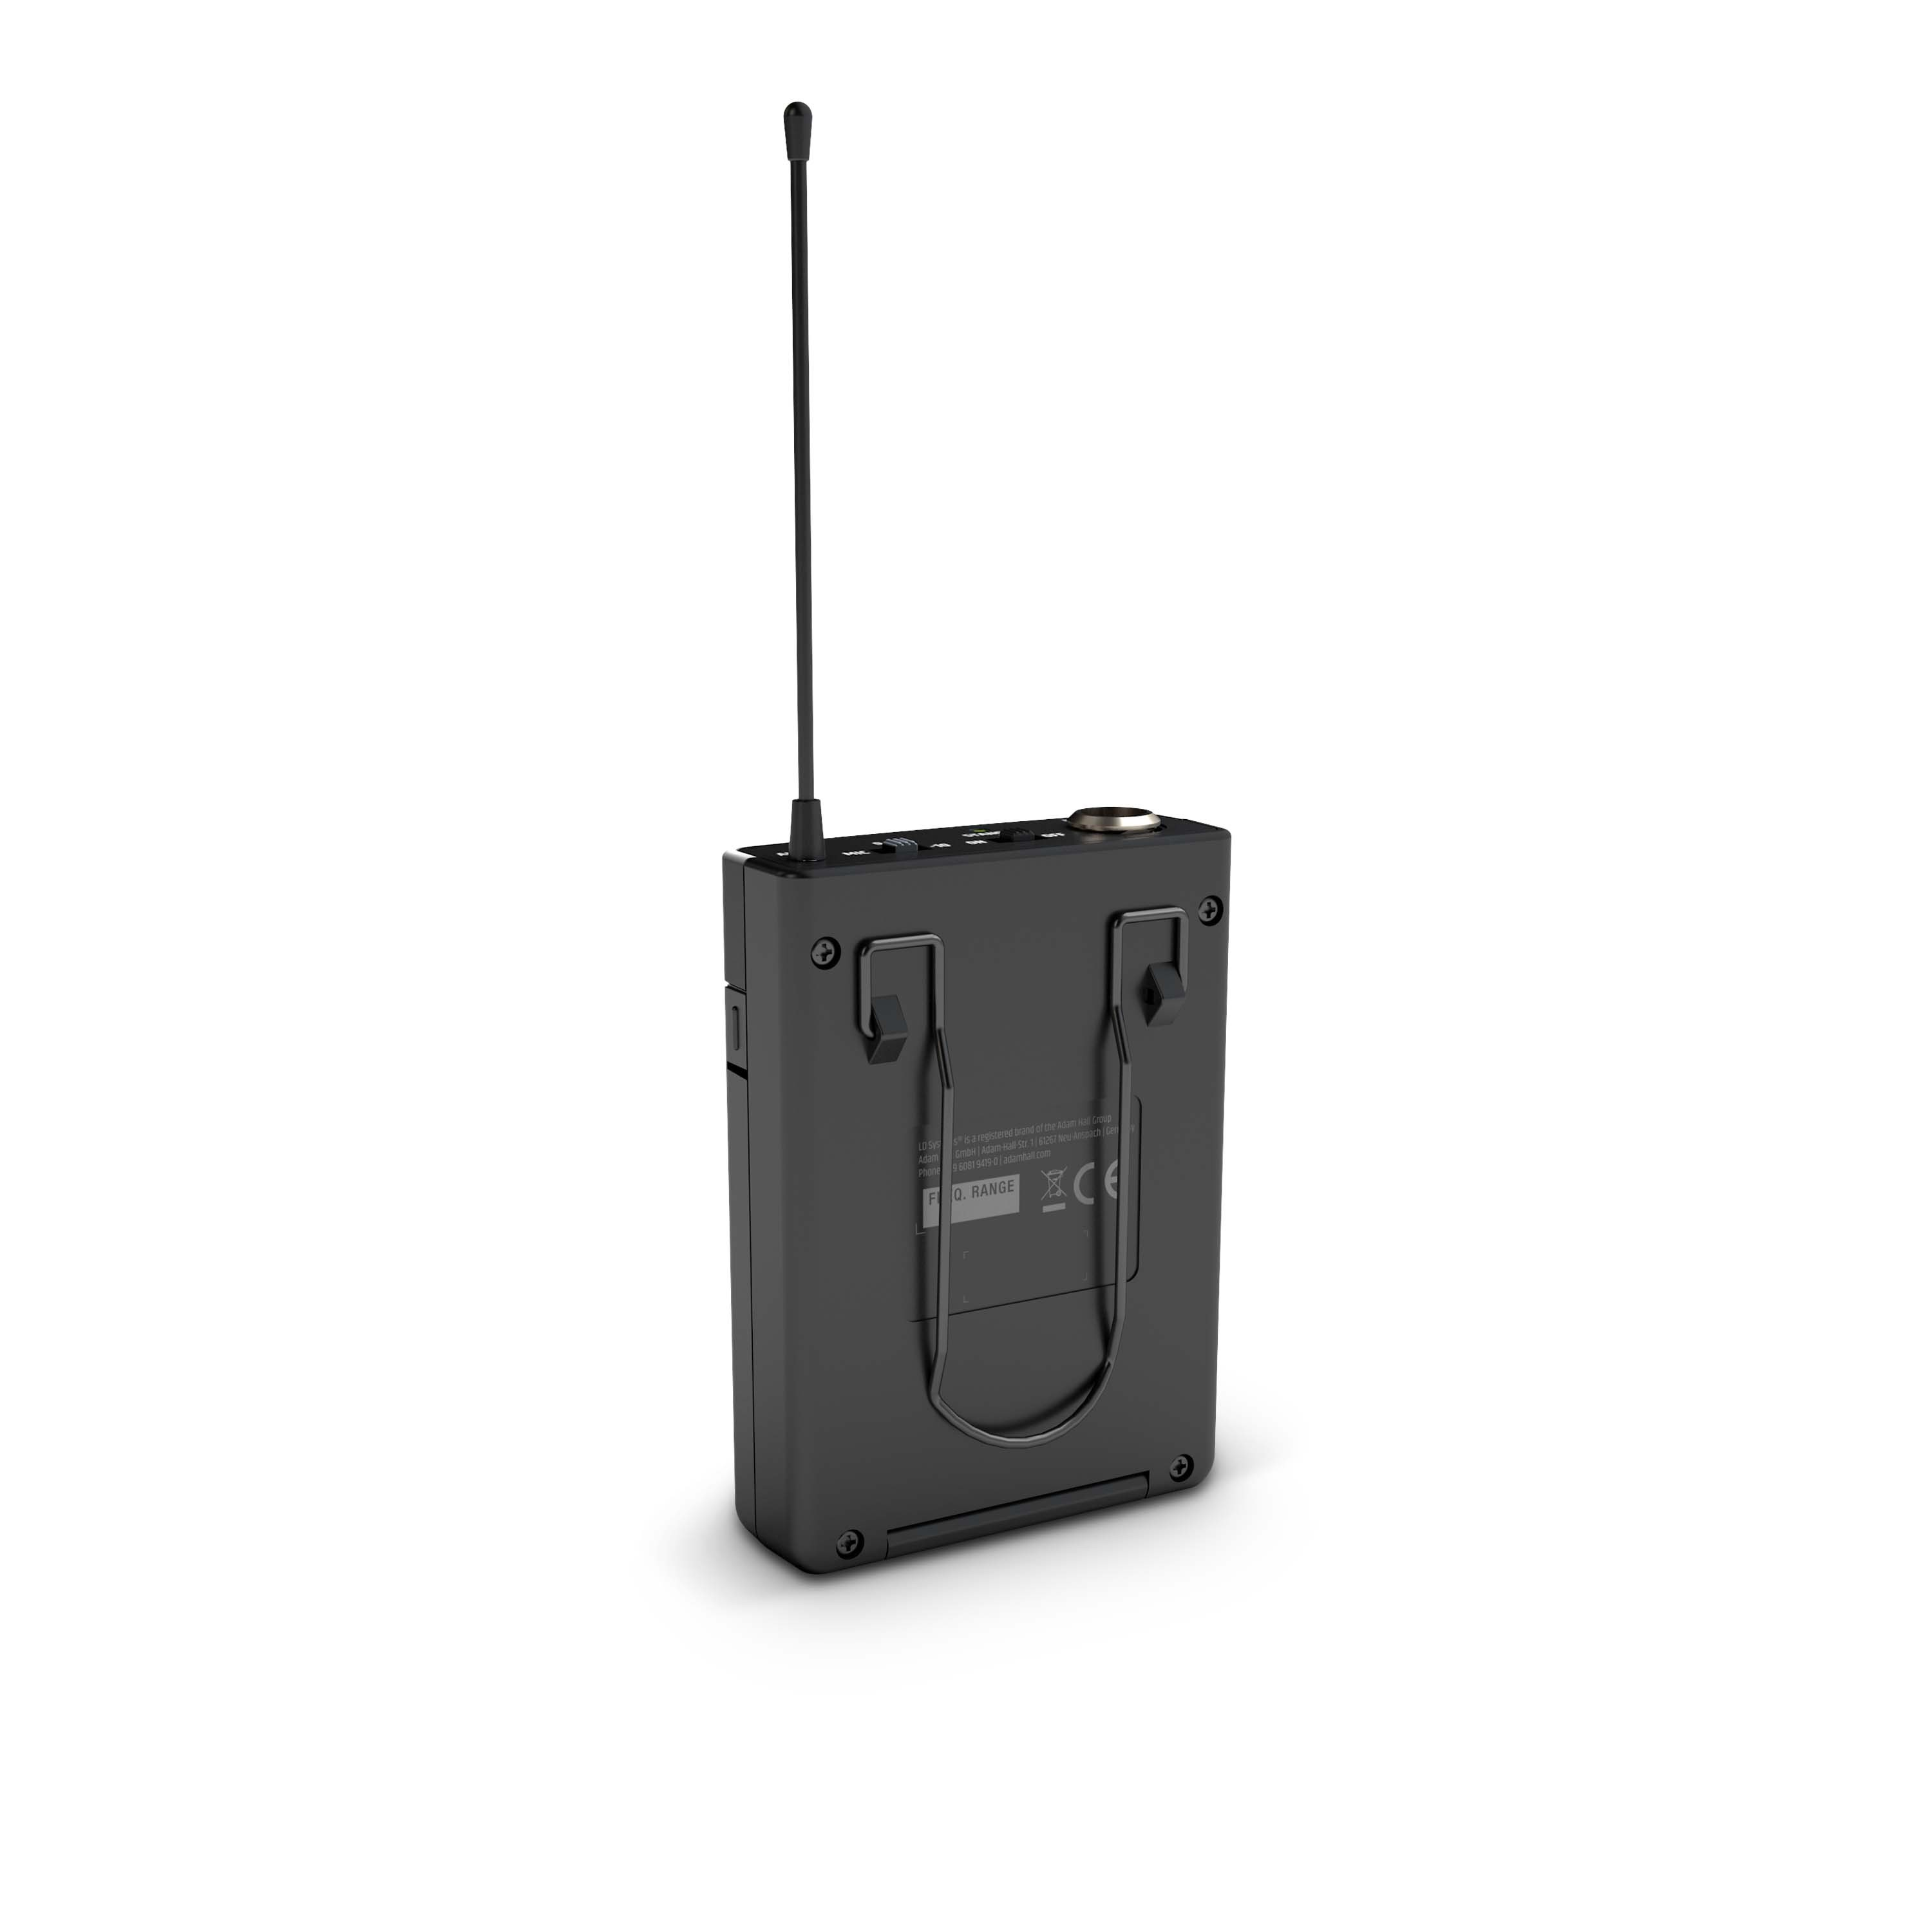 U304.7 BPL Wireless Microphone System with Bodypack and Lavalier Microphone